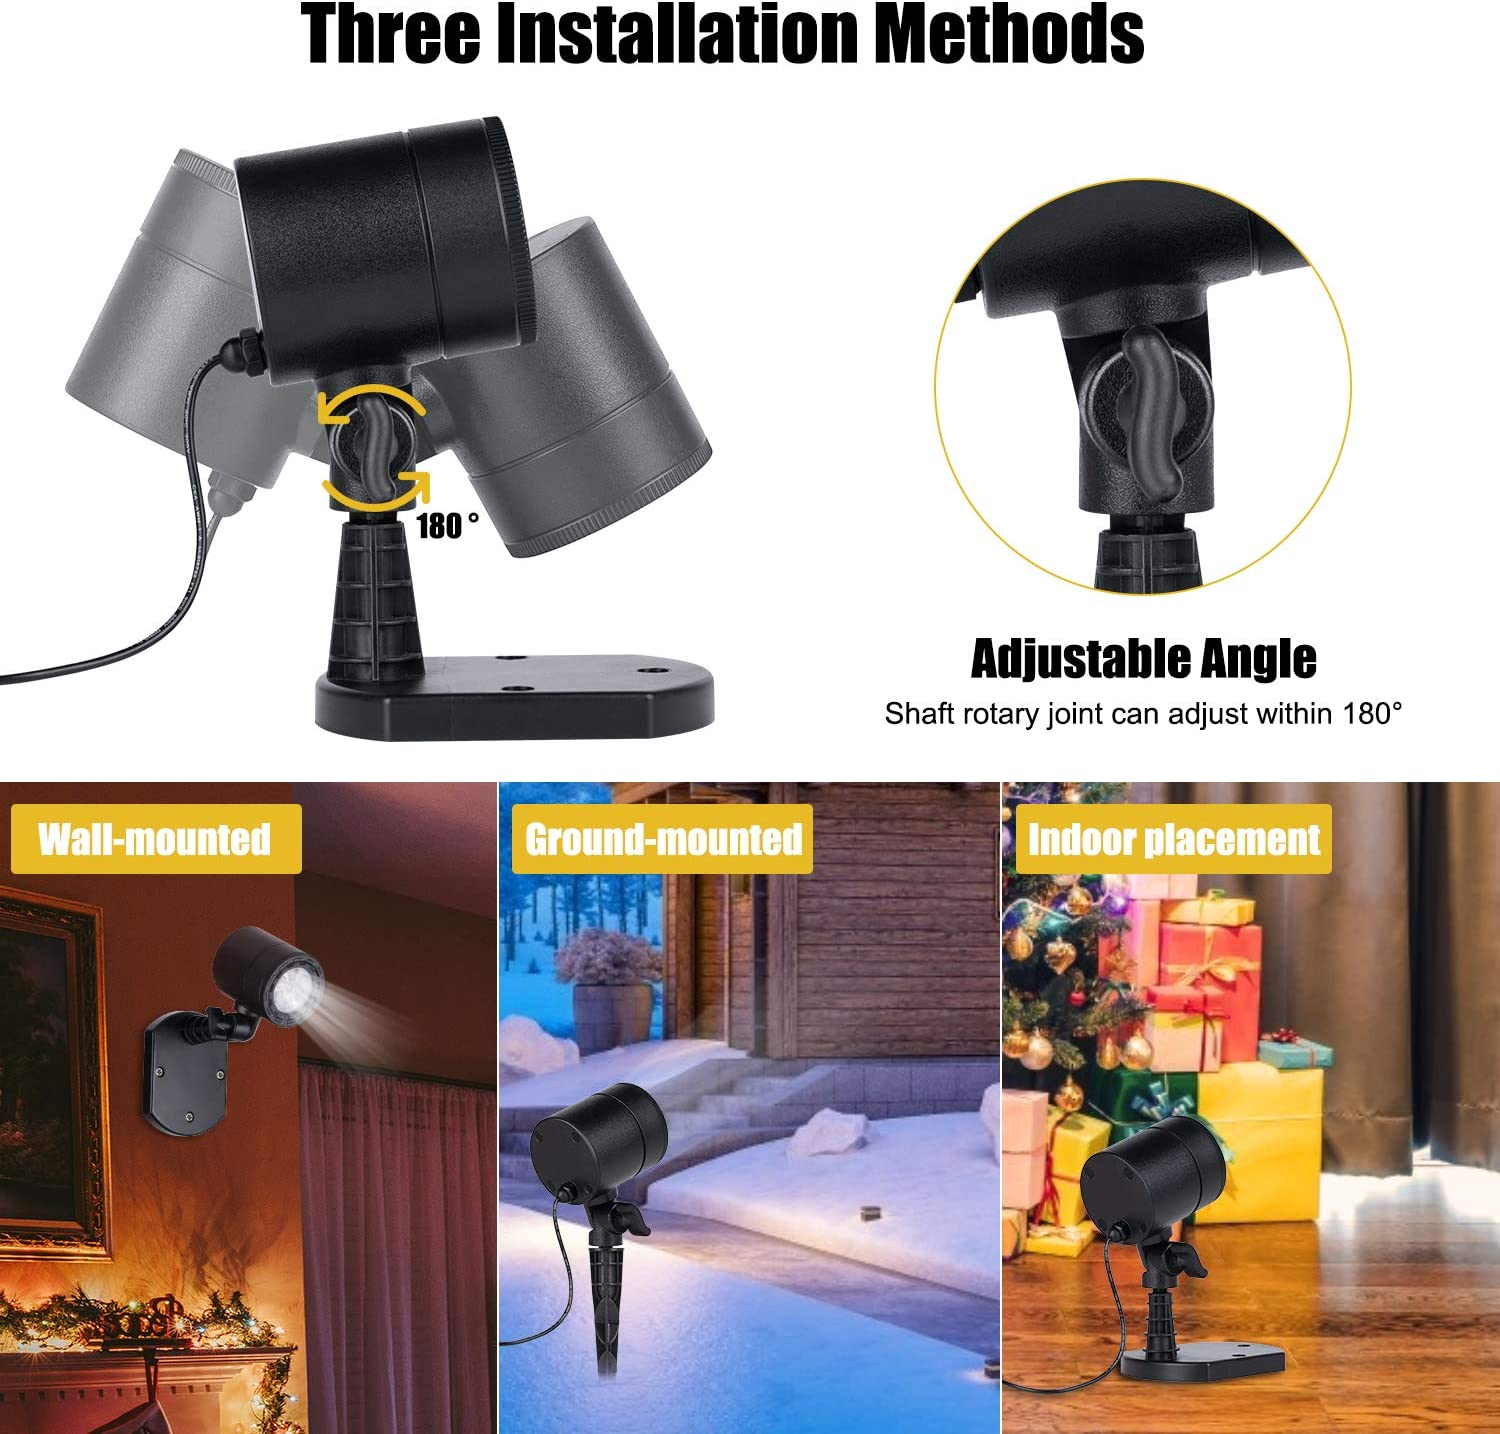 Brightown Snowfall Landscape Light Outdoor LED Waterproof Plug in Moving Effect Wall Mountable for Christmas Holiday Indoor Home Party New Year Decoration Show